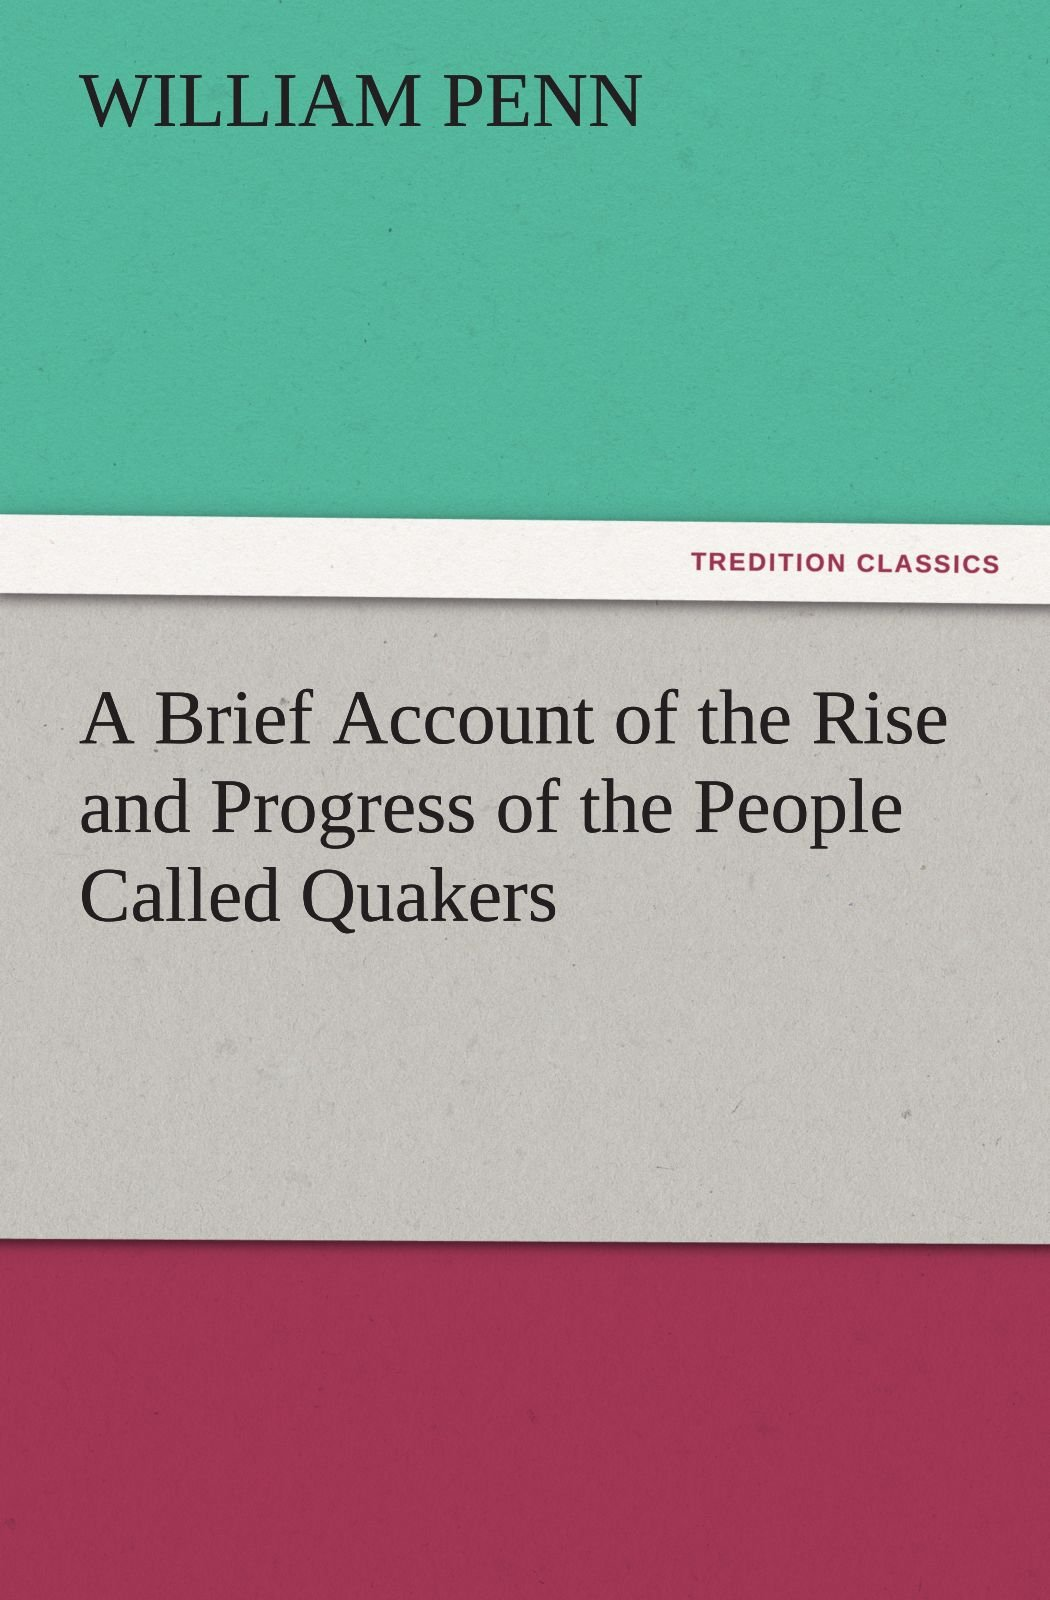 Download A Brief Account of the Rise and Progress of the People Called Quakers (TREDITION CLASSICS) pdf epub